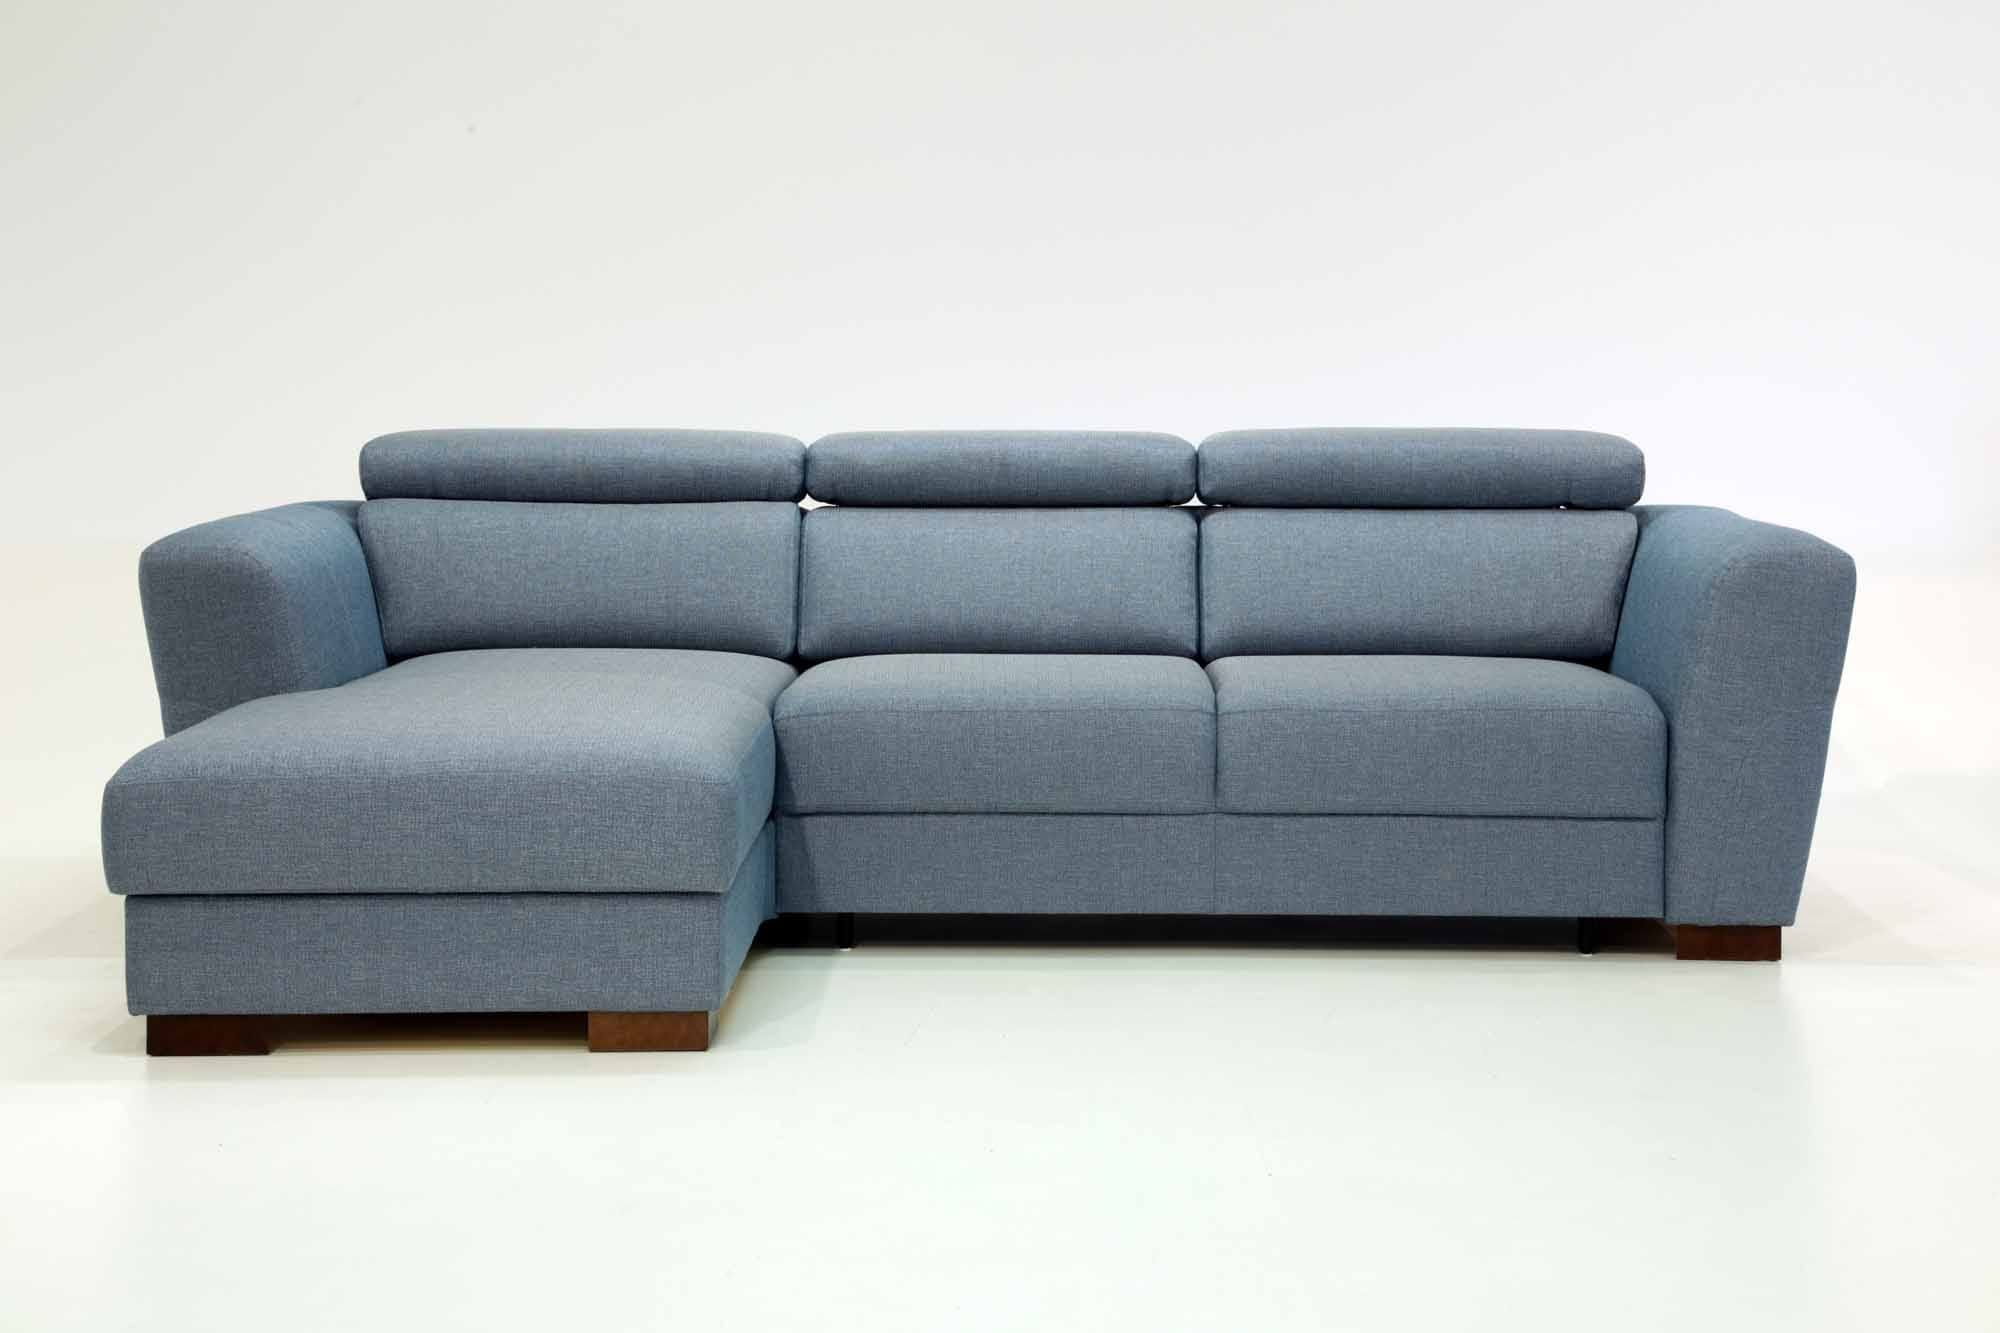 Caliber Sectional Sofa Sleeper Full Xl Size Lhf By Luonto Furniture In 2020 Sleeper Sofa Sectional Sofa Types Of Sofas